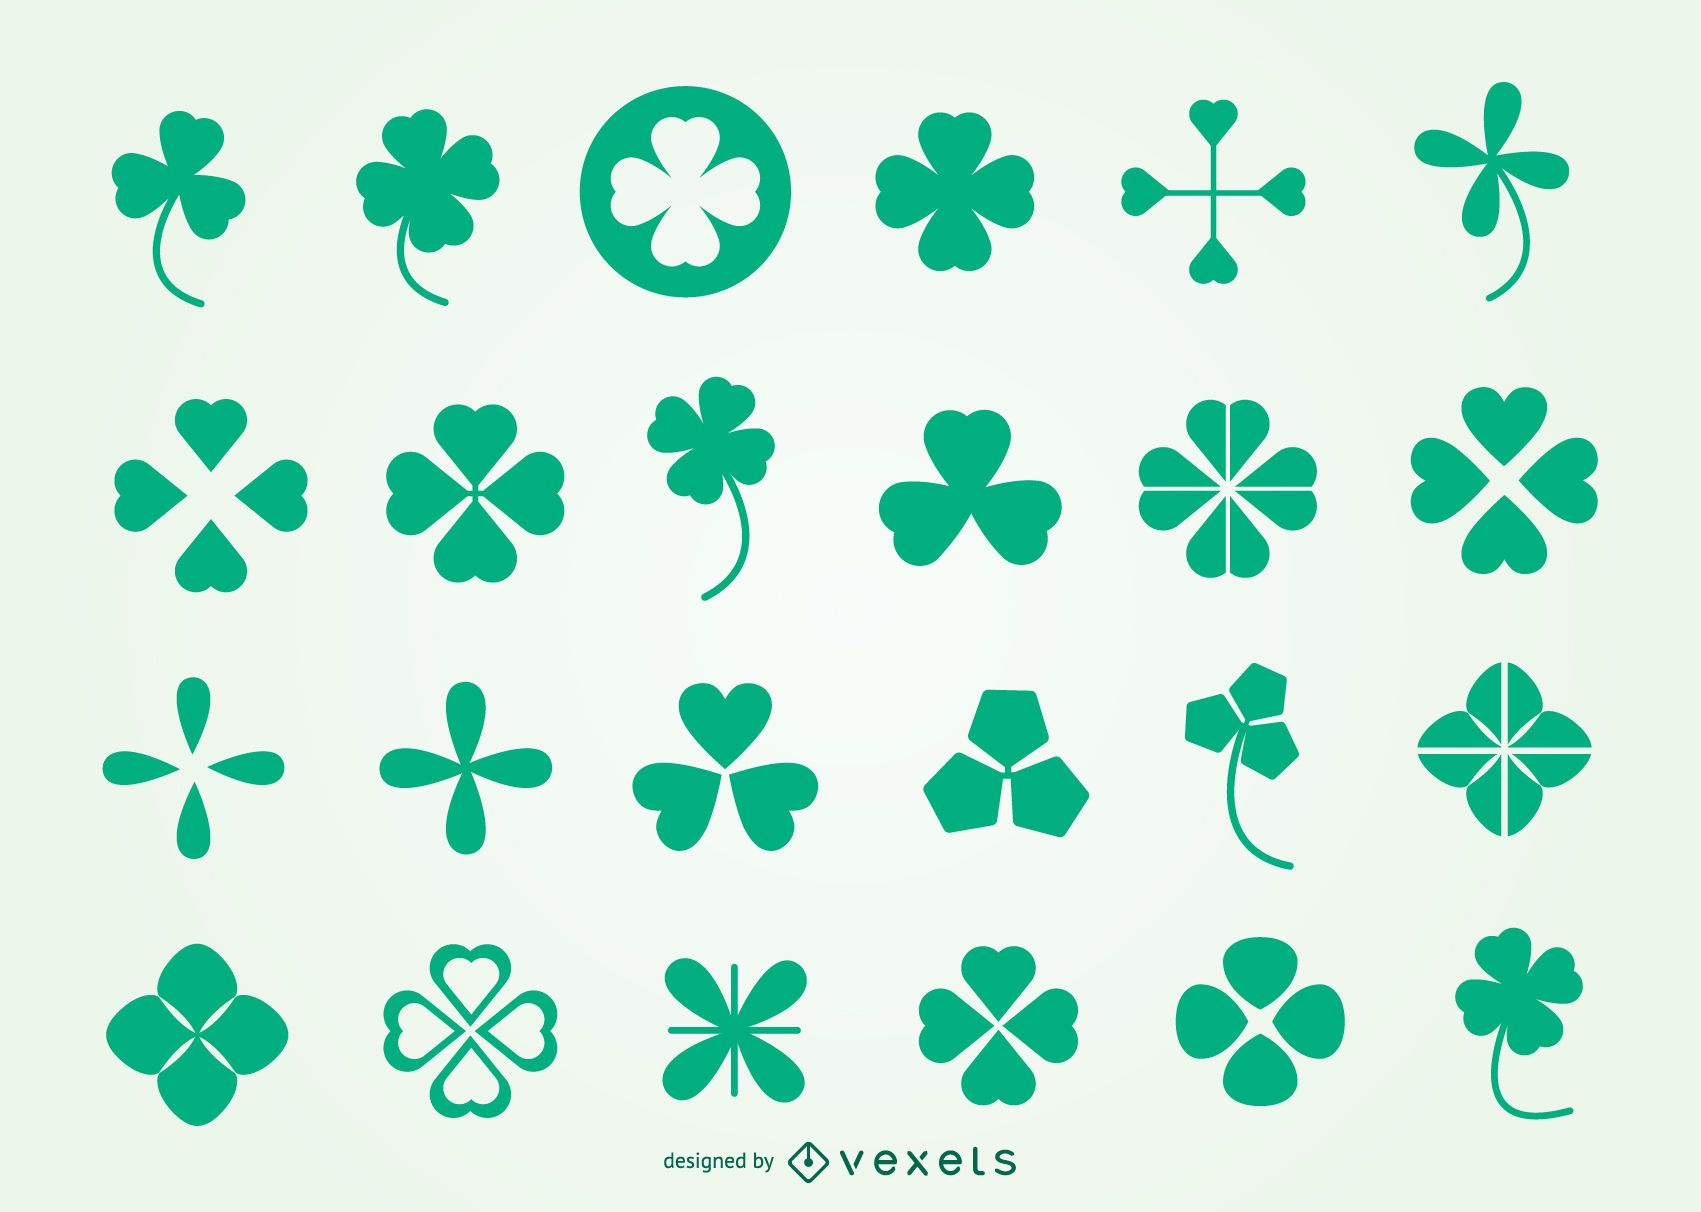 Trefoil symbol pack for saint patrick day vector download image user biocorpaavc